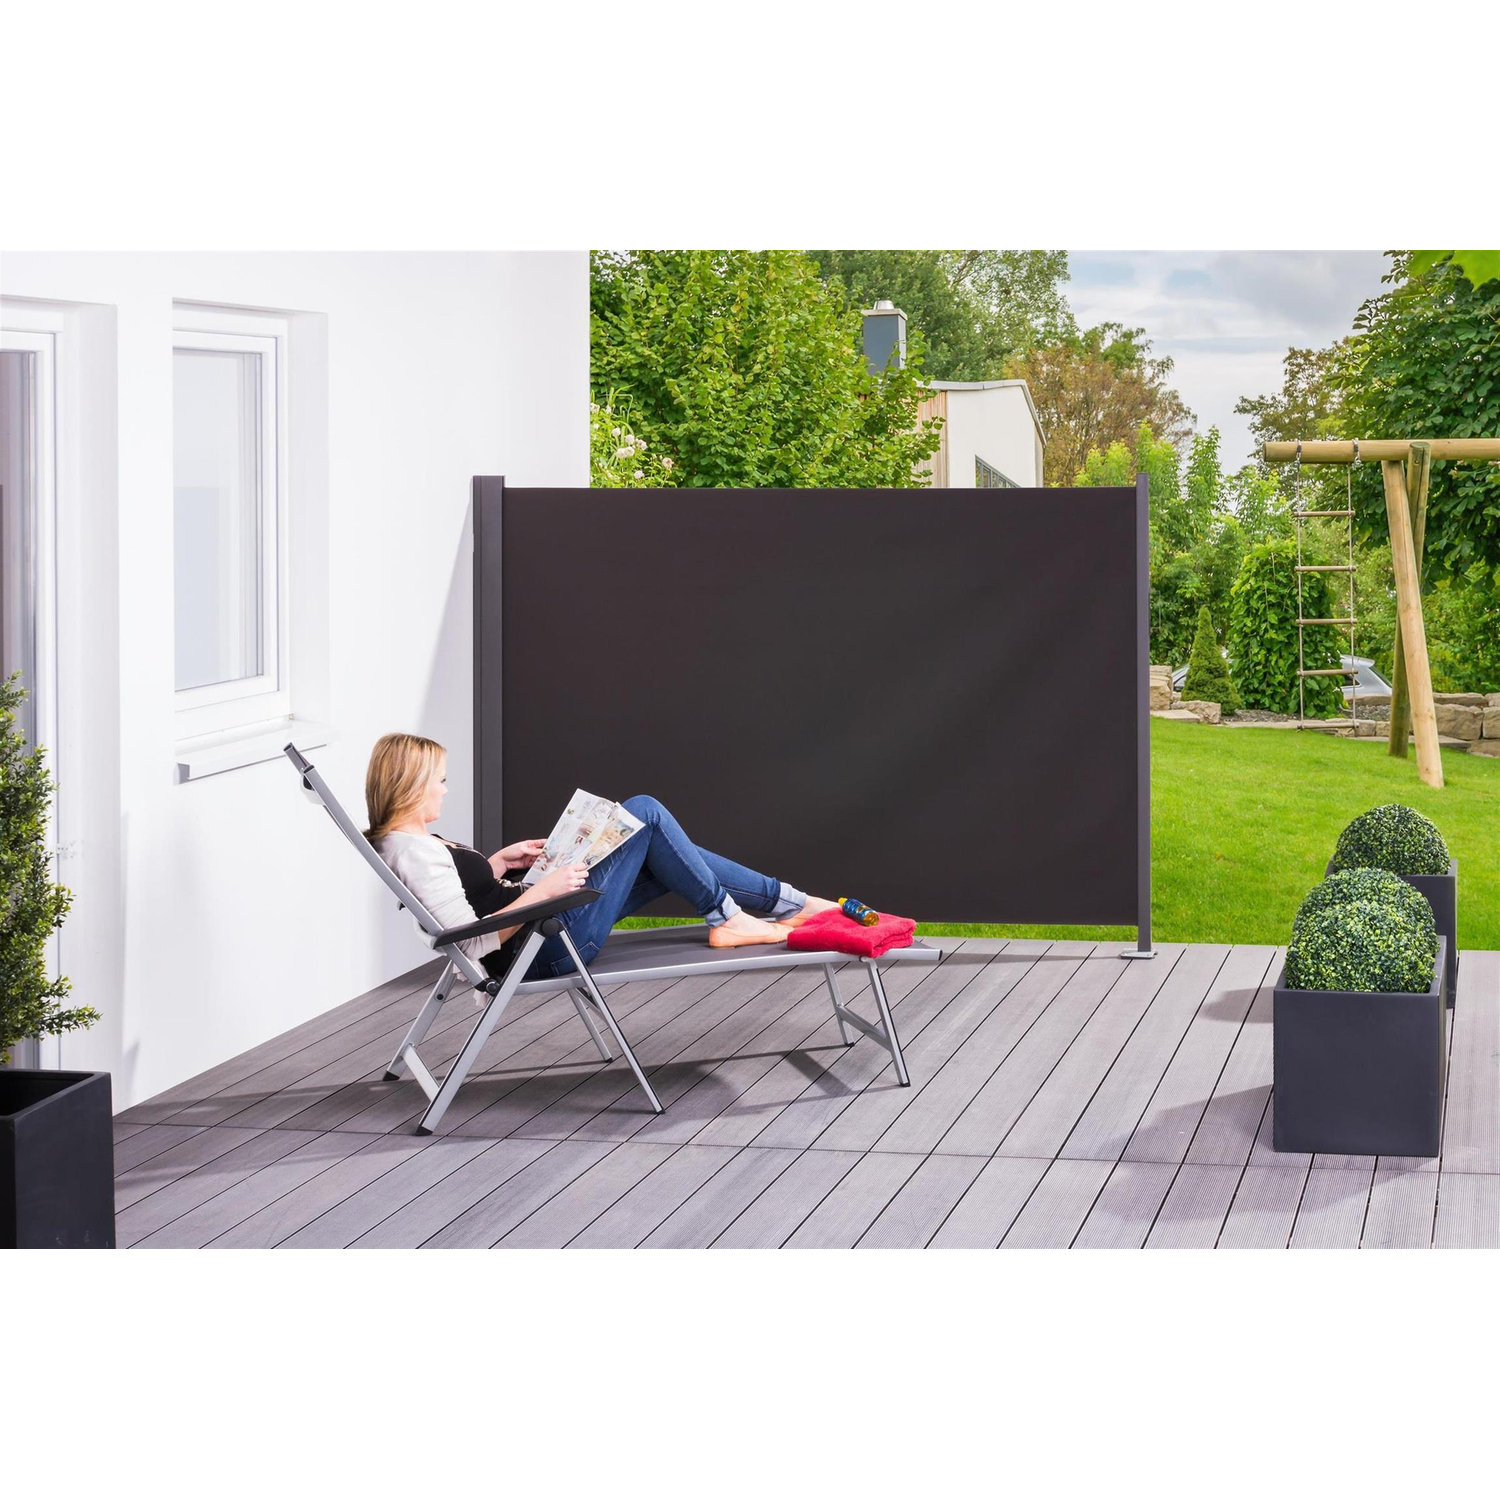 sichtschutz windschutz terrasse die neueste innovation der innenarchitektur und m bel. Black Bedroom Furniture Sets. Home Design Ideas